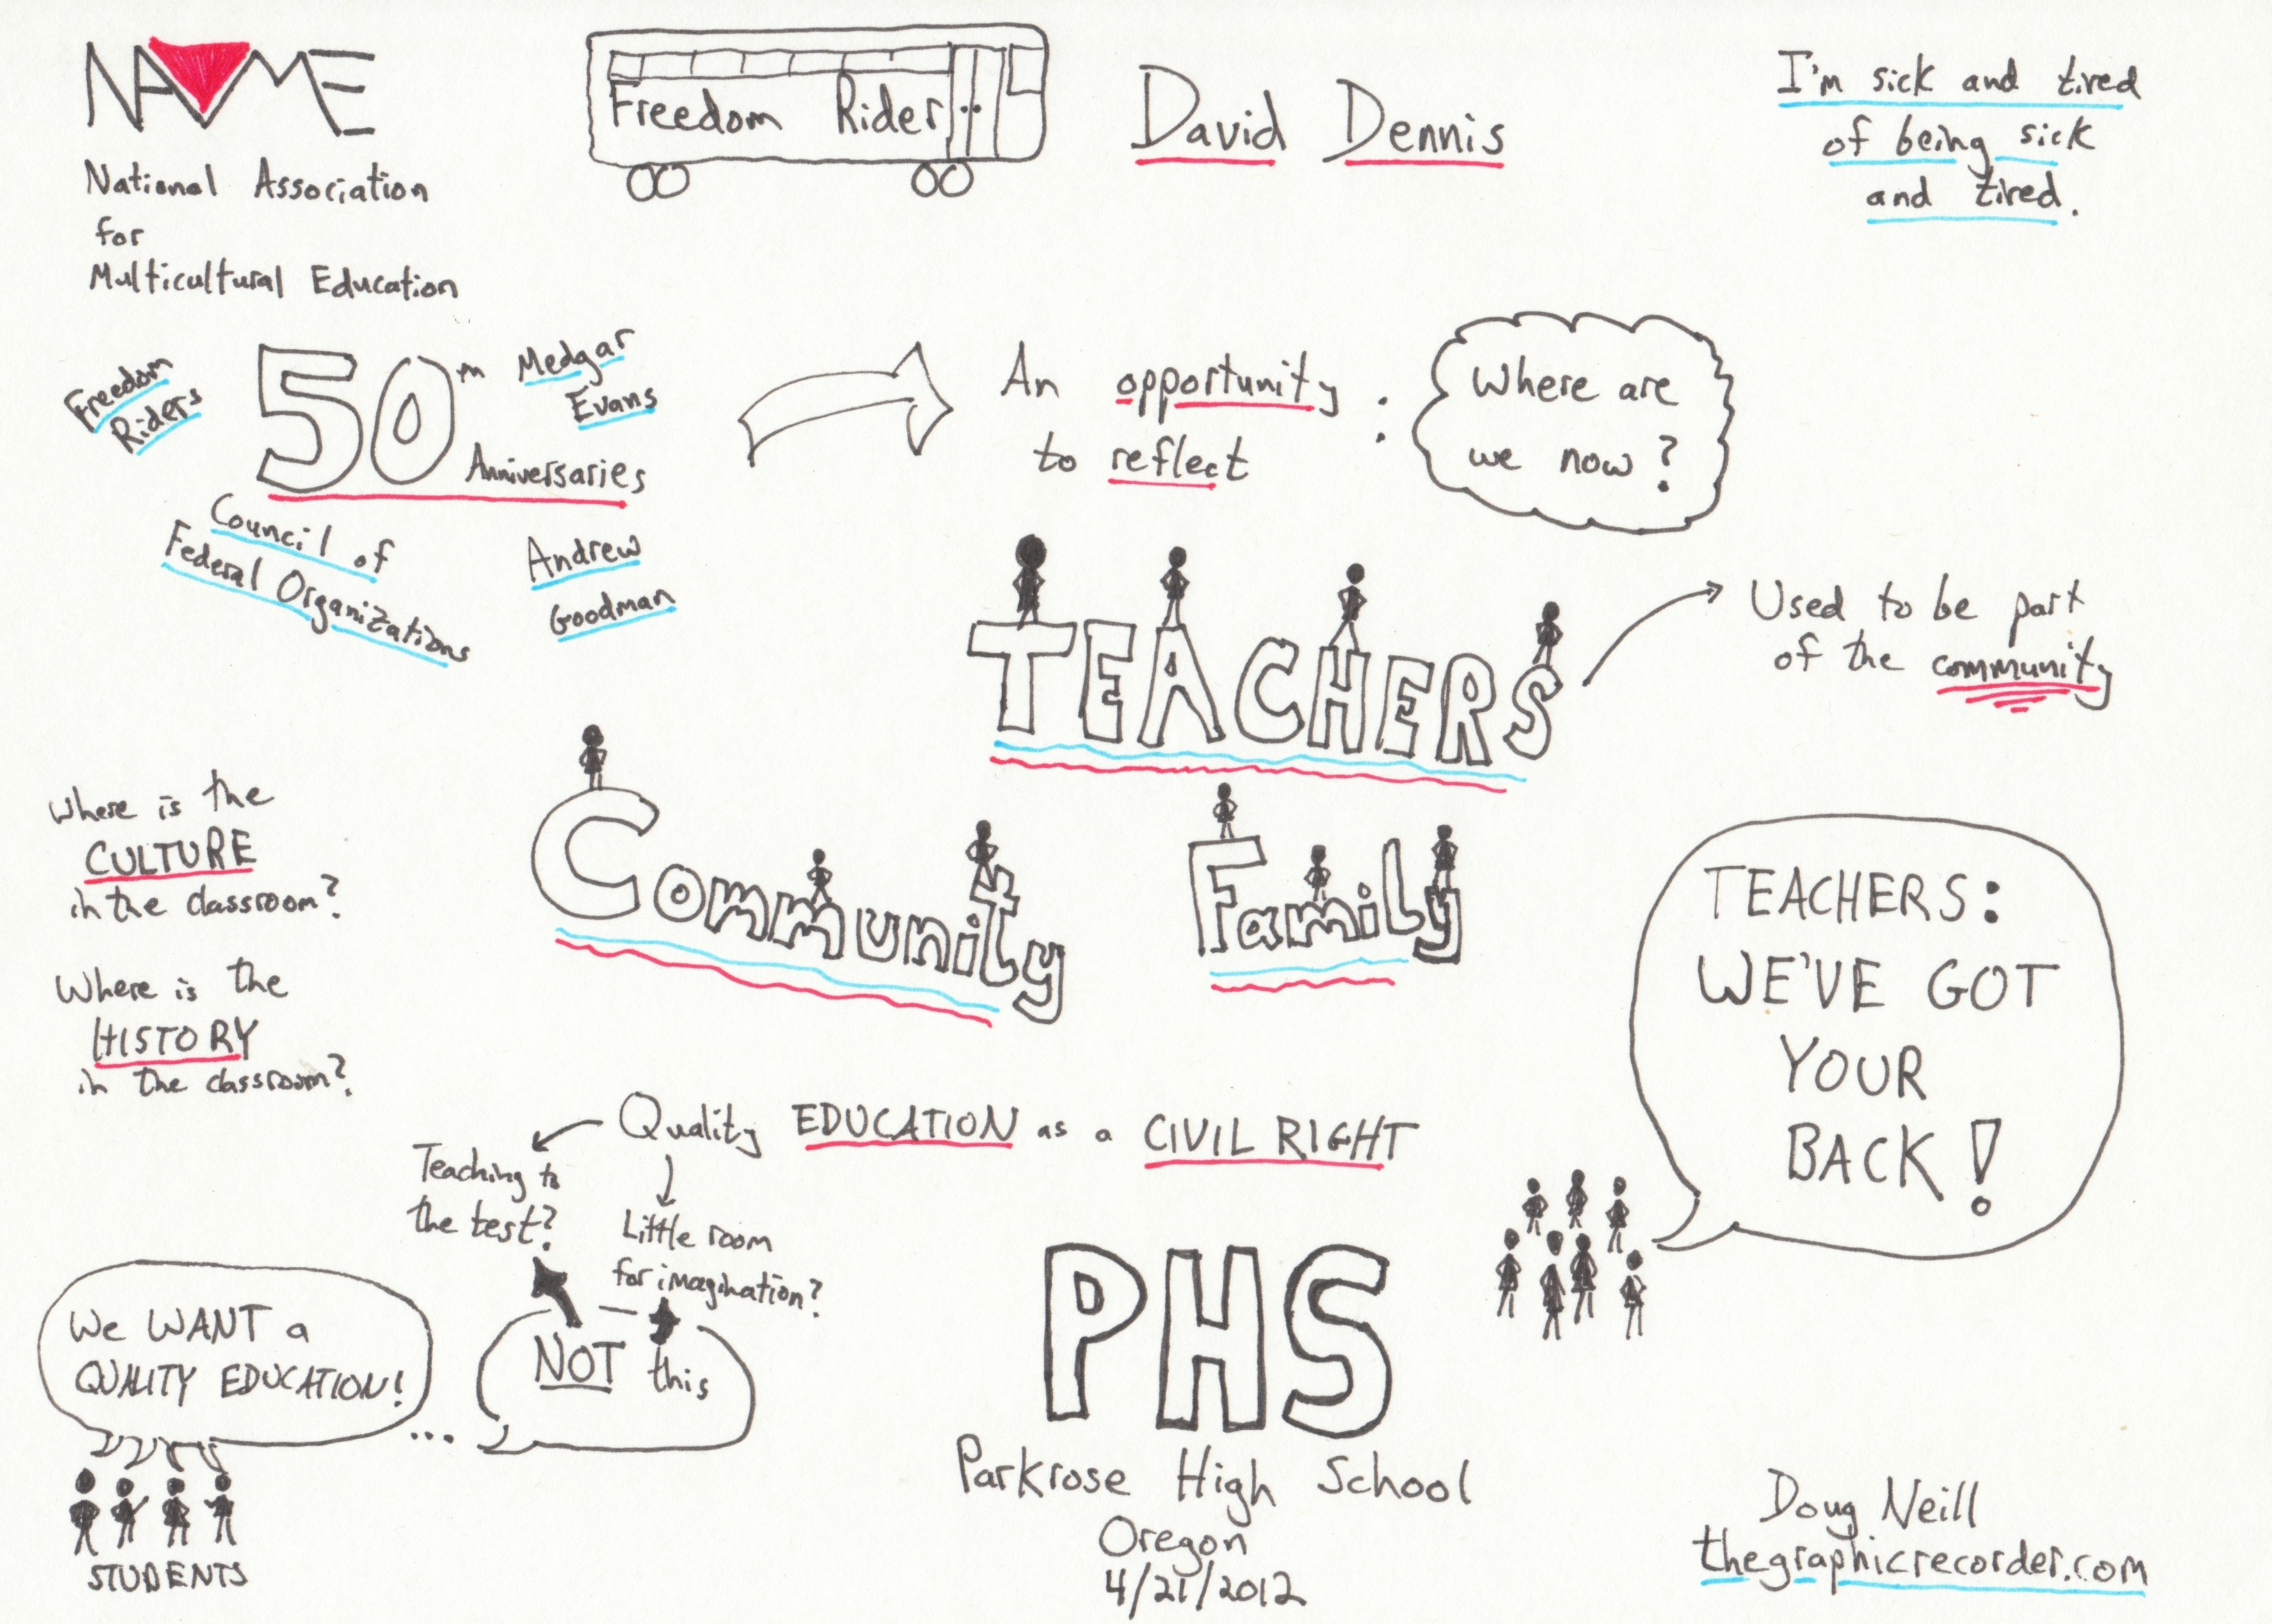 The Graphic Recorder - Doug Neill - Sketch Notes - Oregon NAME 2012 Conference - David Dennis Keynote Address